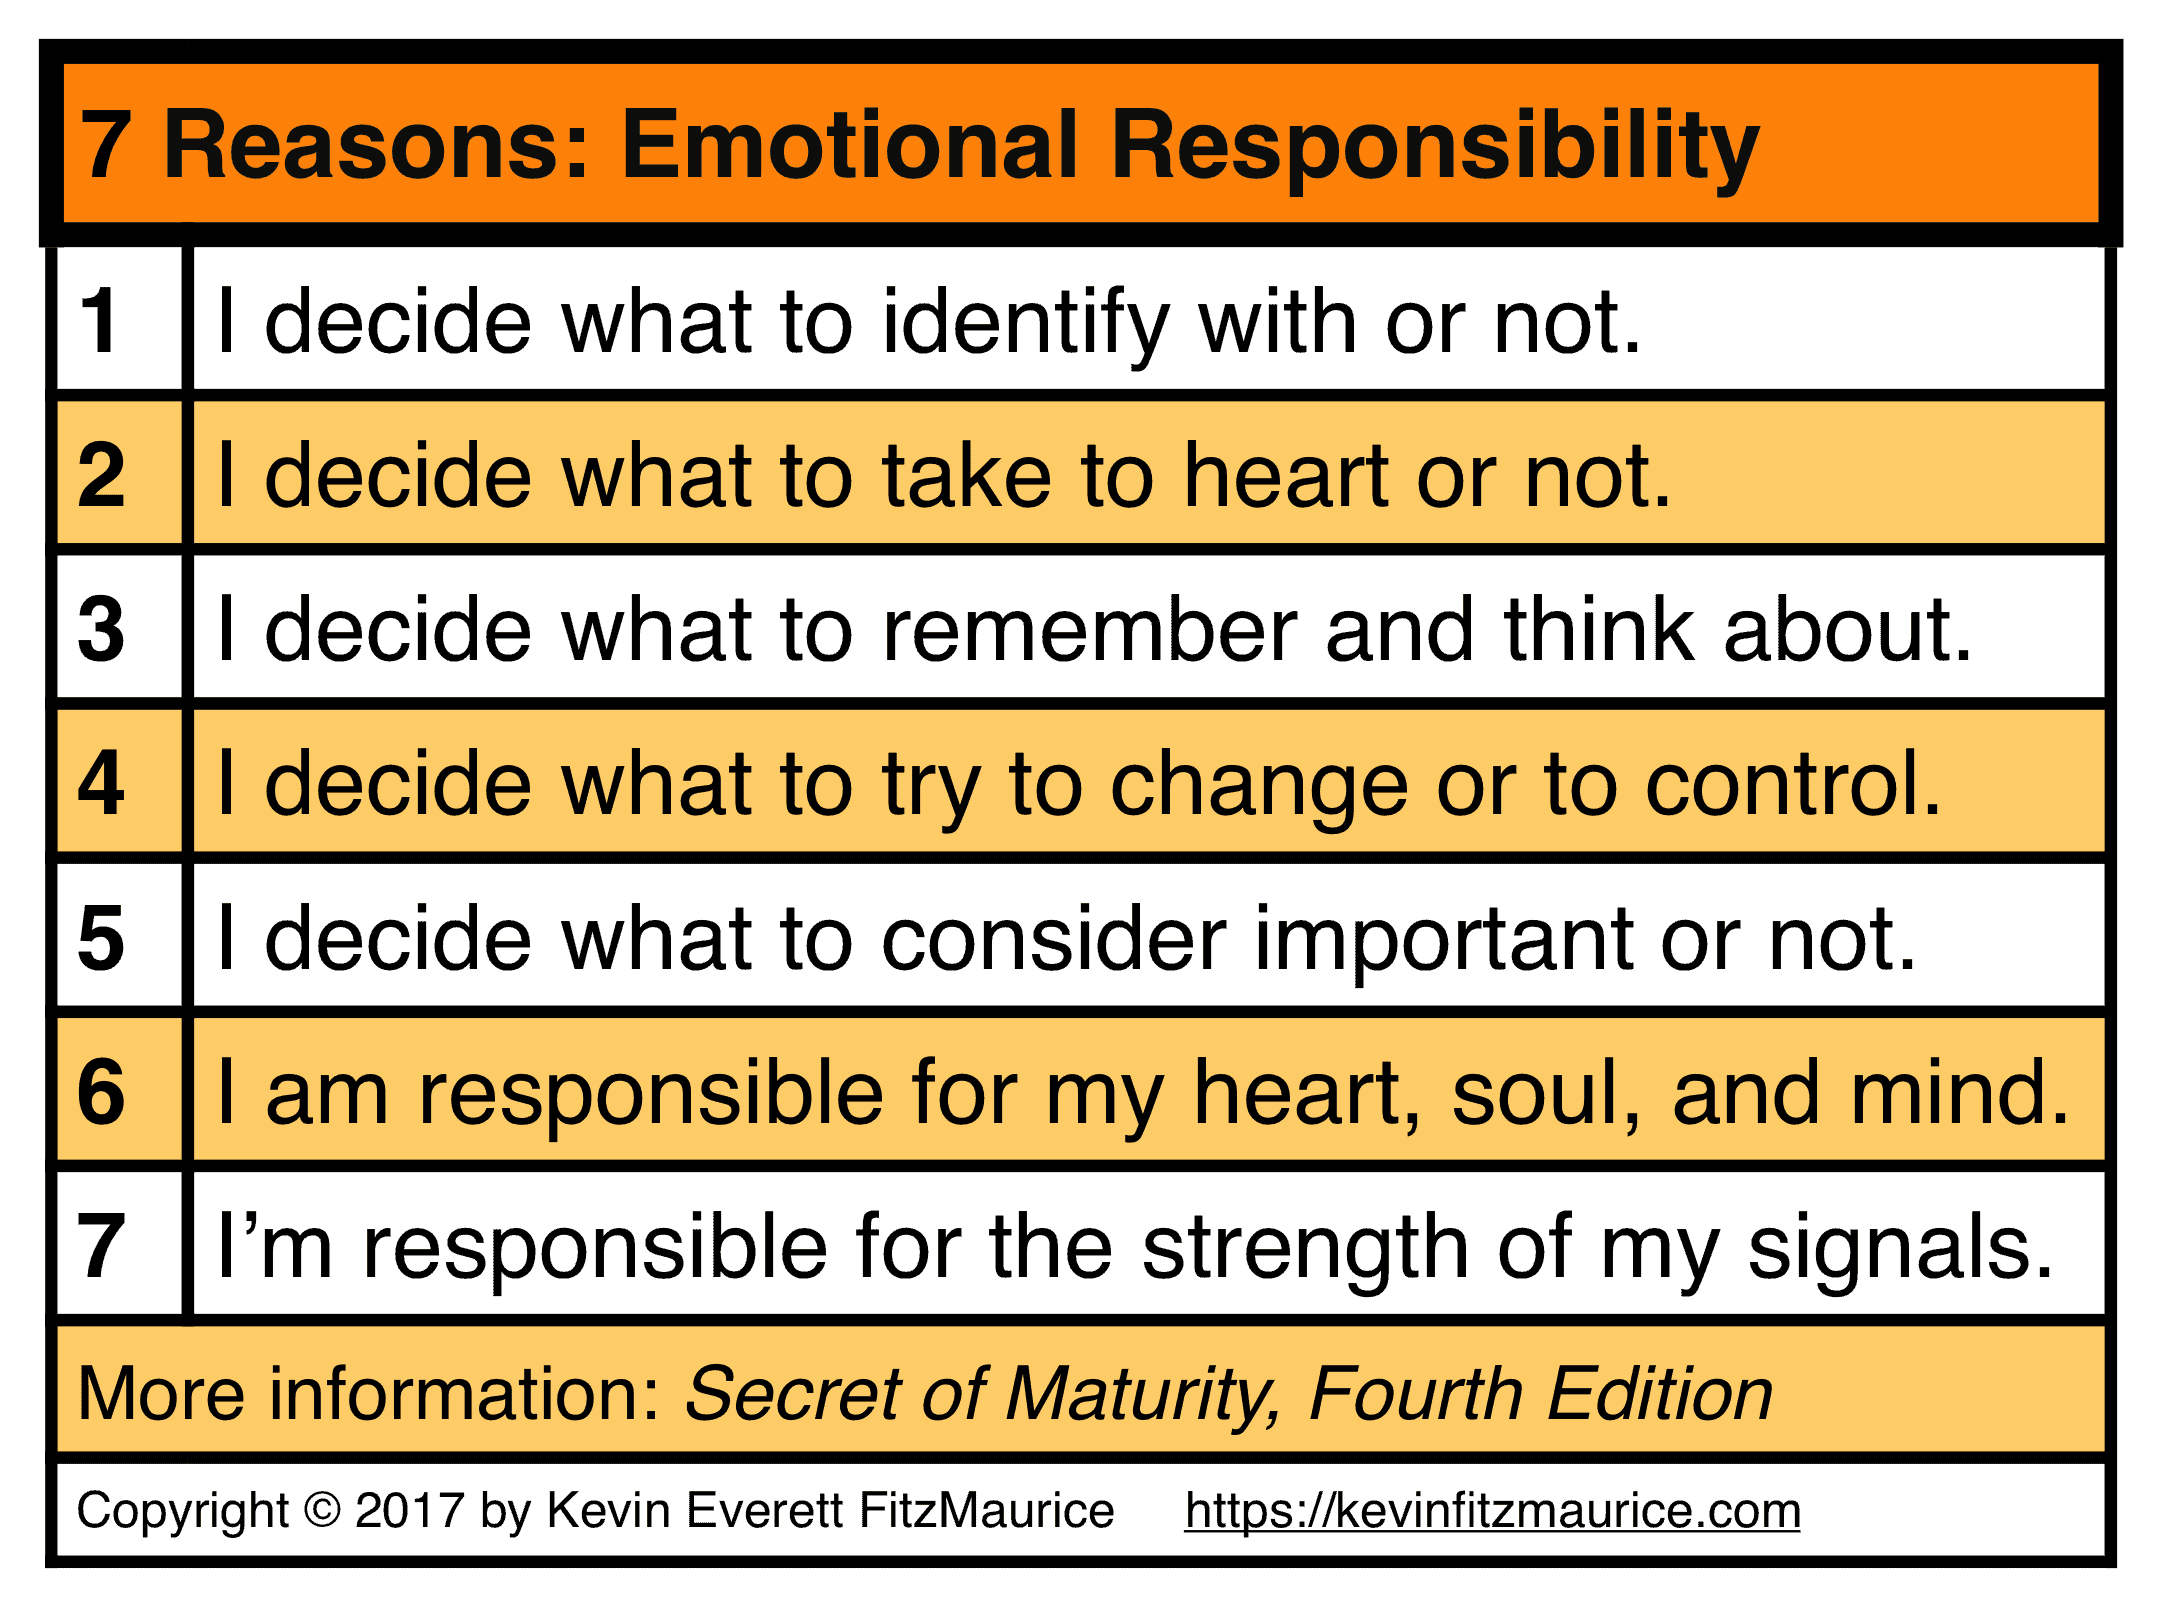 7 Reasons Why You Are Responsible